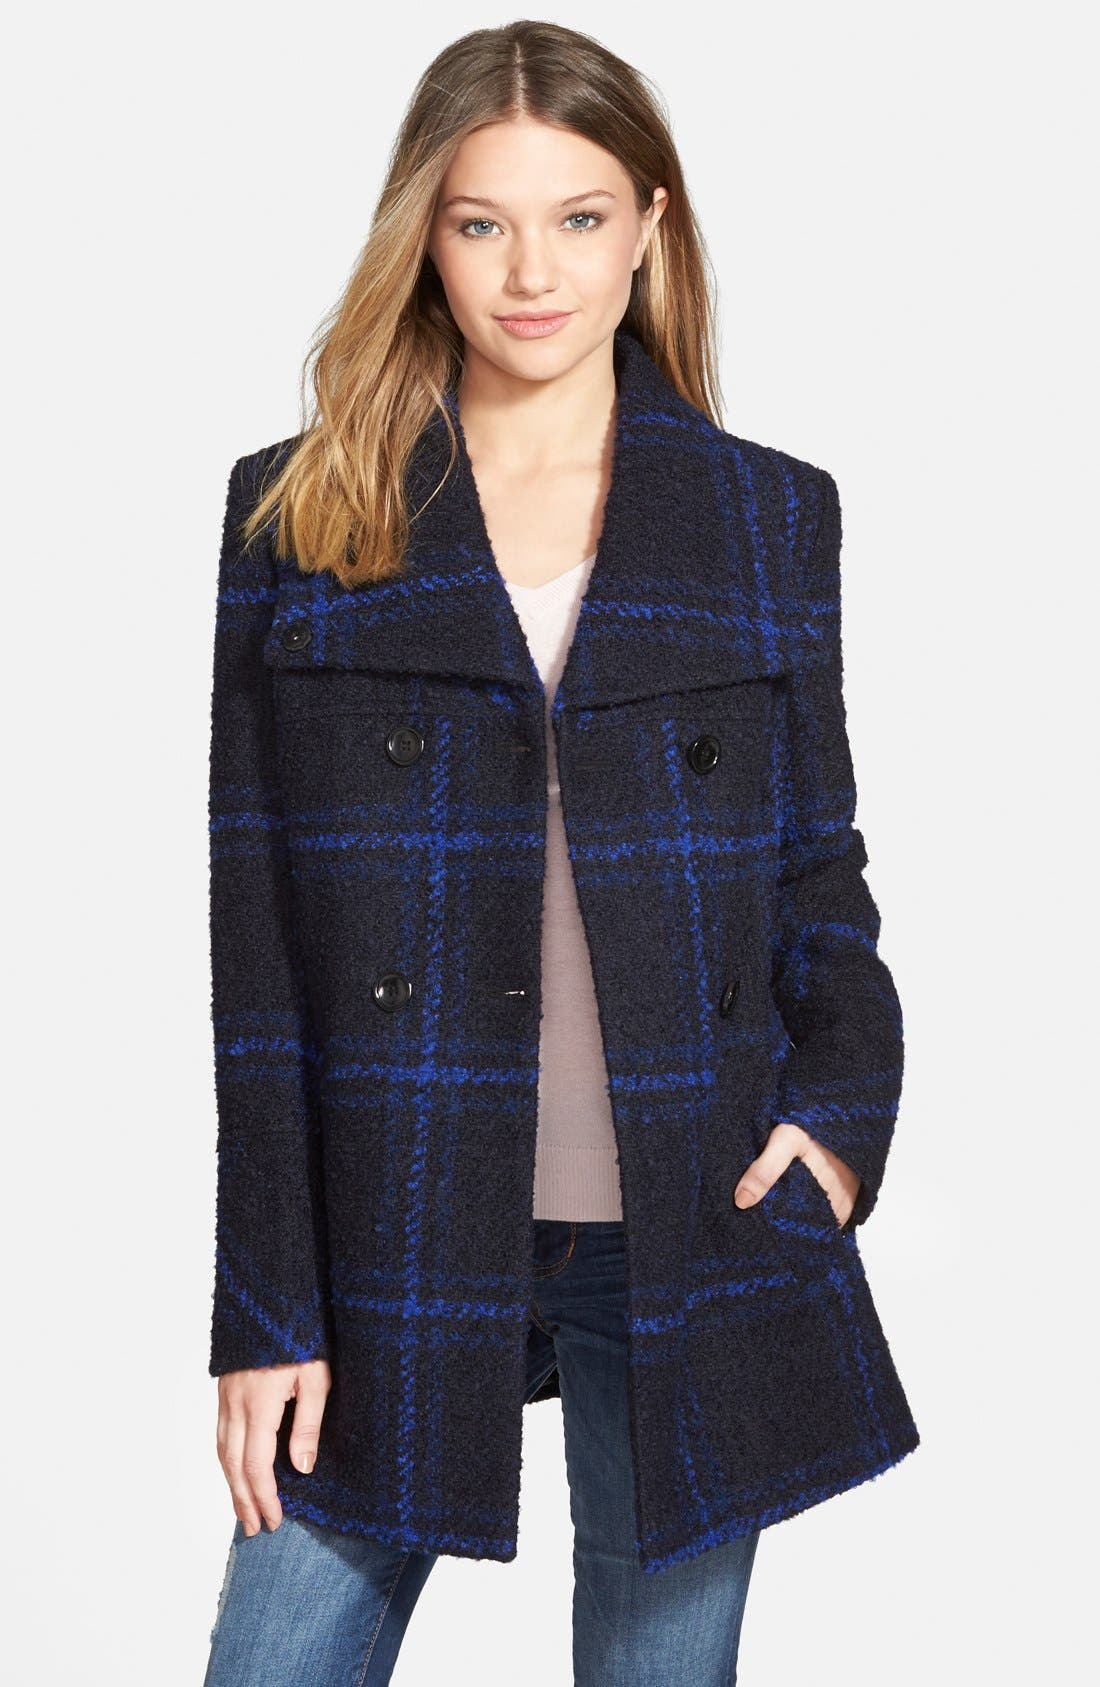 Alternate Image 1 Selected - Maralyn & Me Plaid A-Line Jacket  (Online Only)